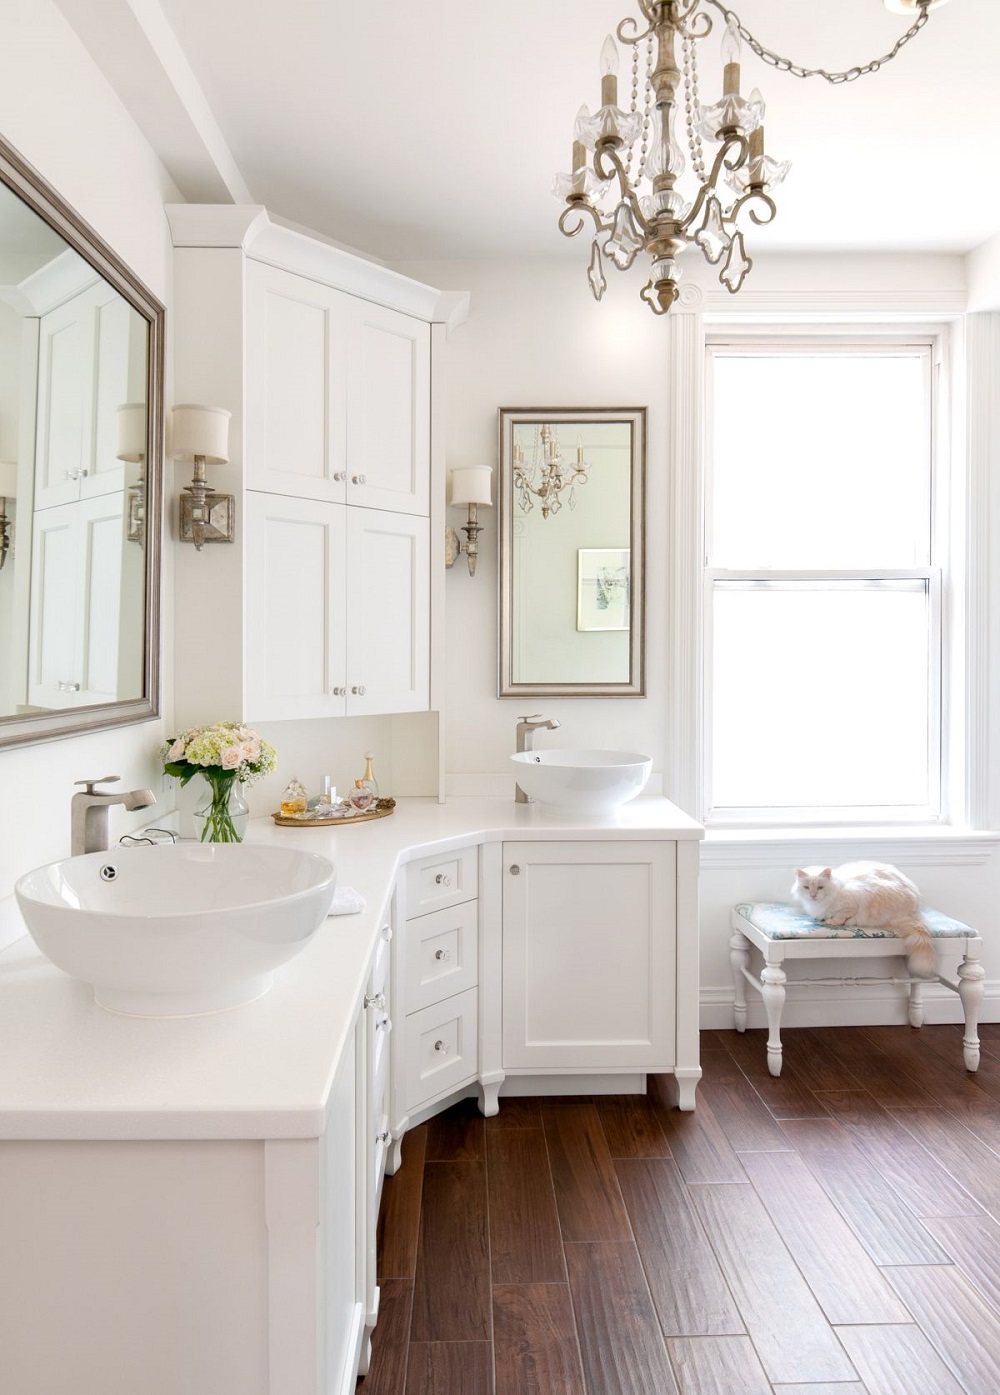 Neat corner bathroom vanity ideas that   you will find useful